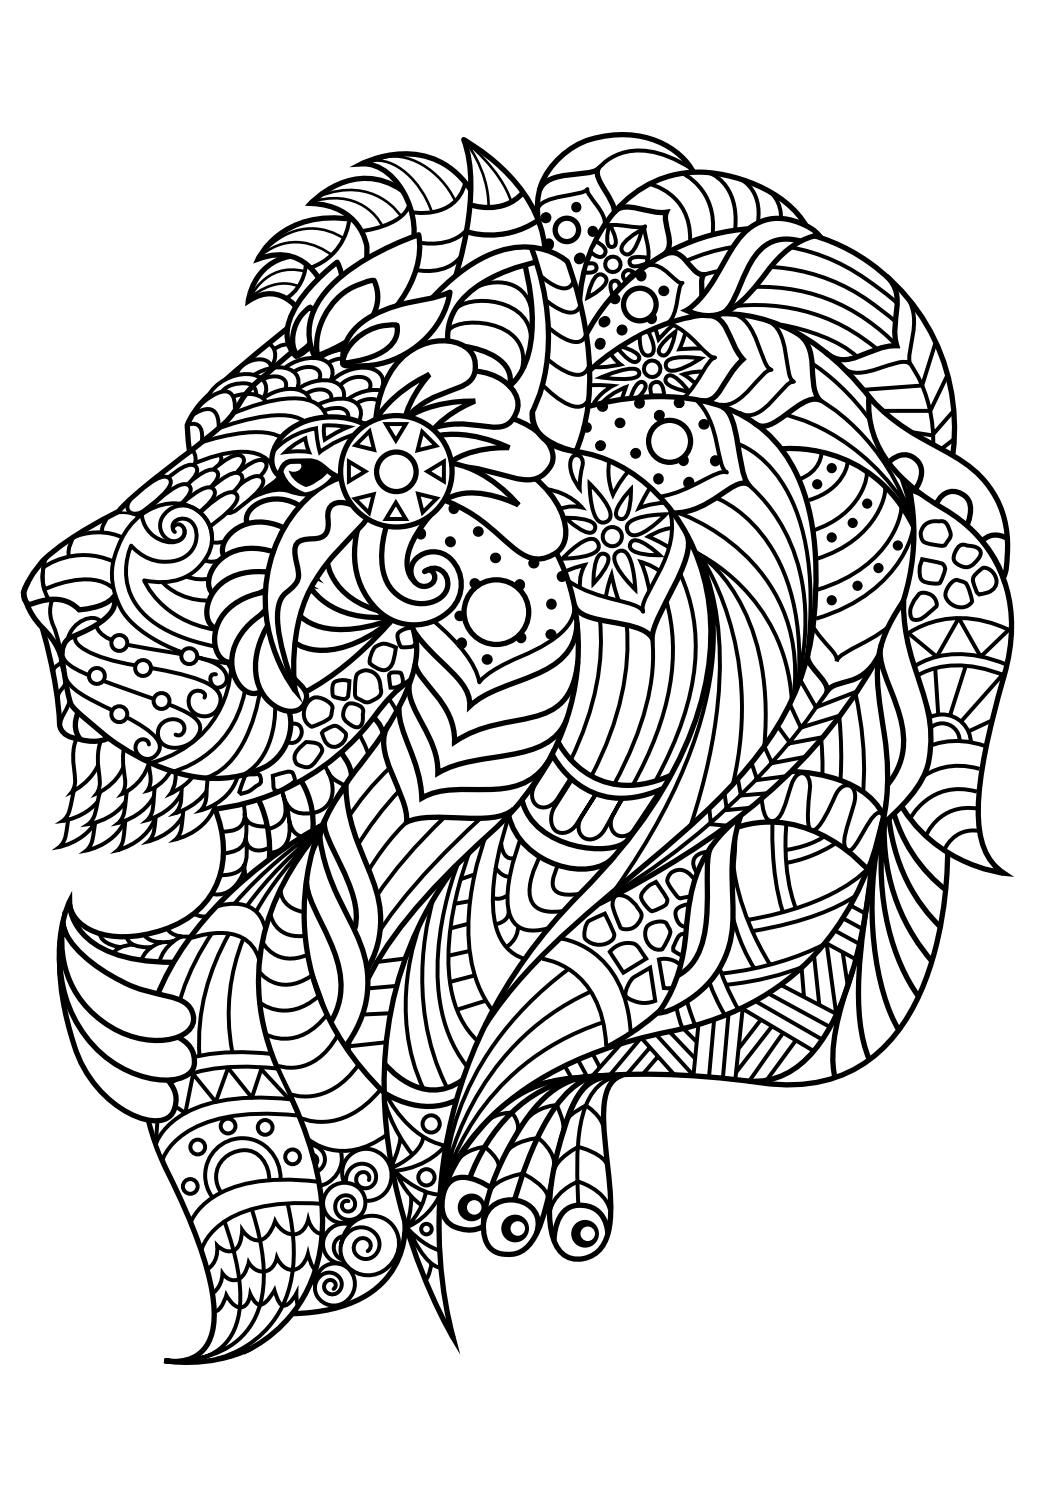 Animal coloring pages pdf Lion coloring pages, Mandala